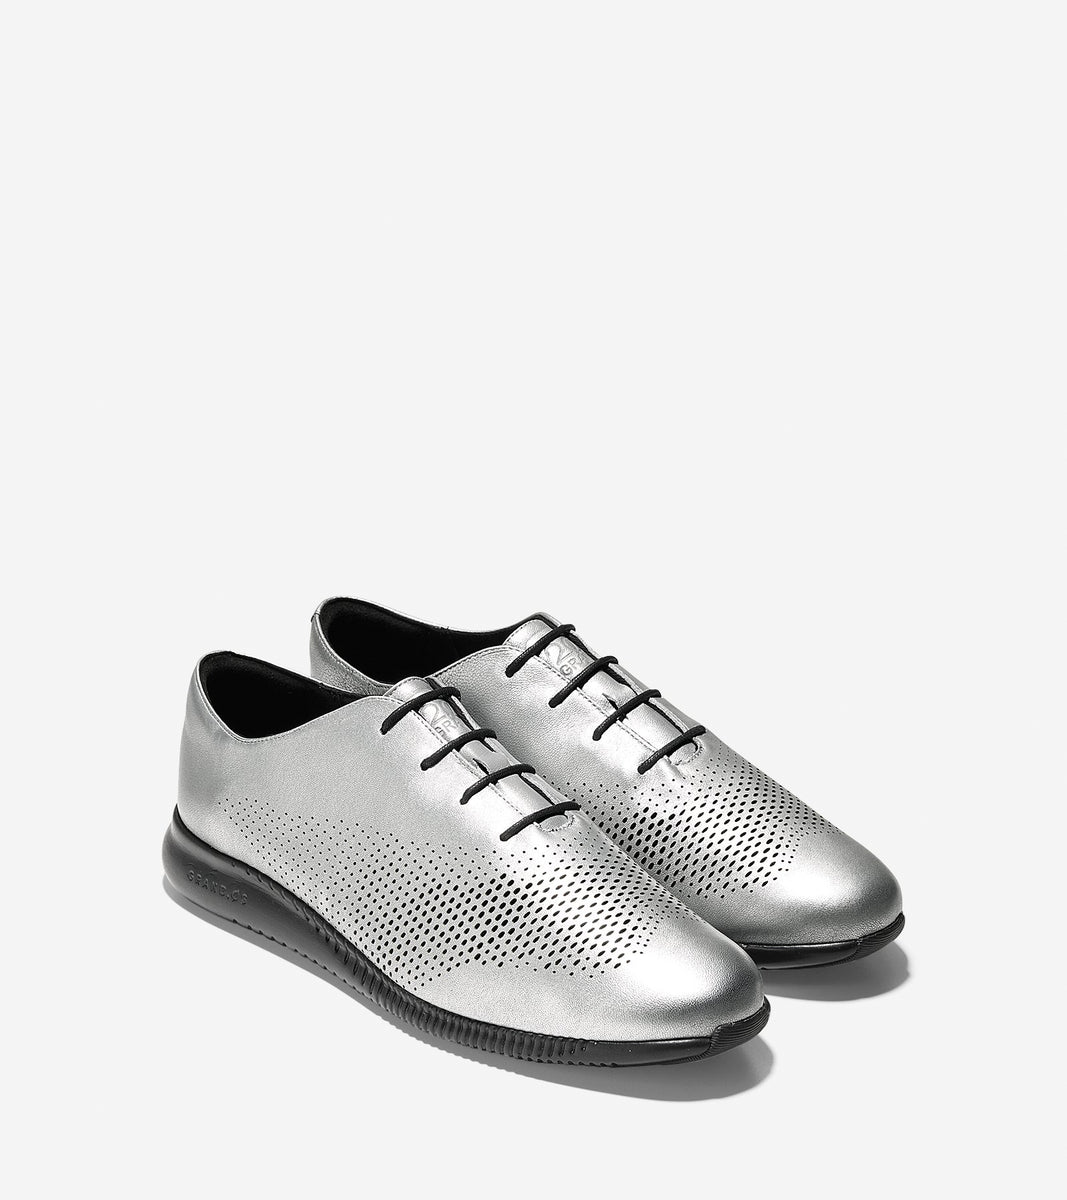 2.ZERØGRAND Laser Wingtip Oxford